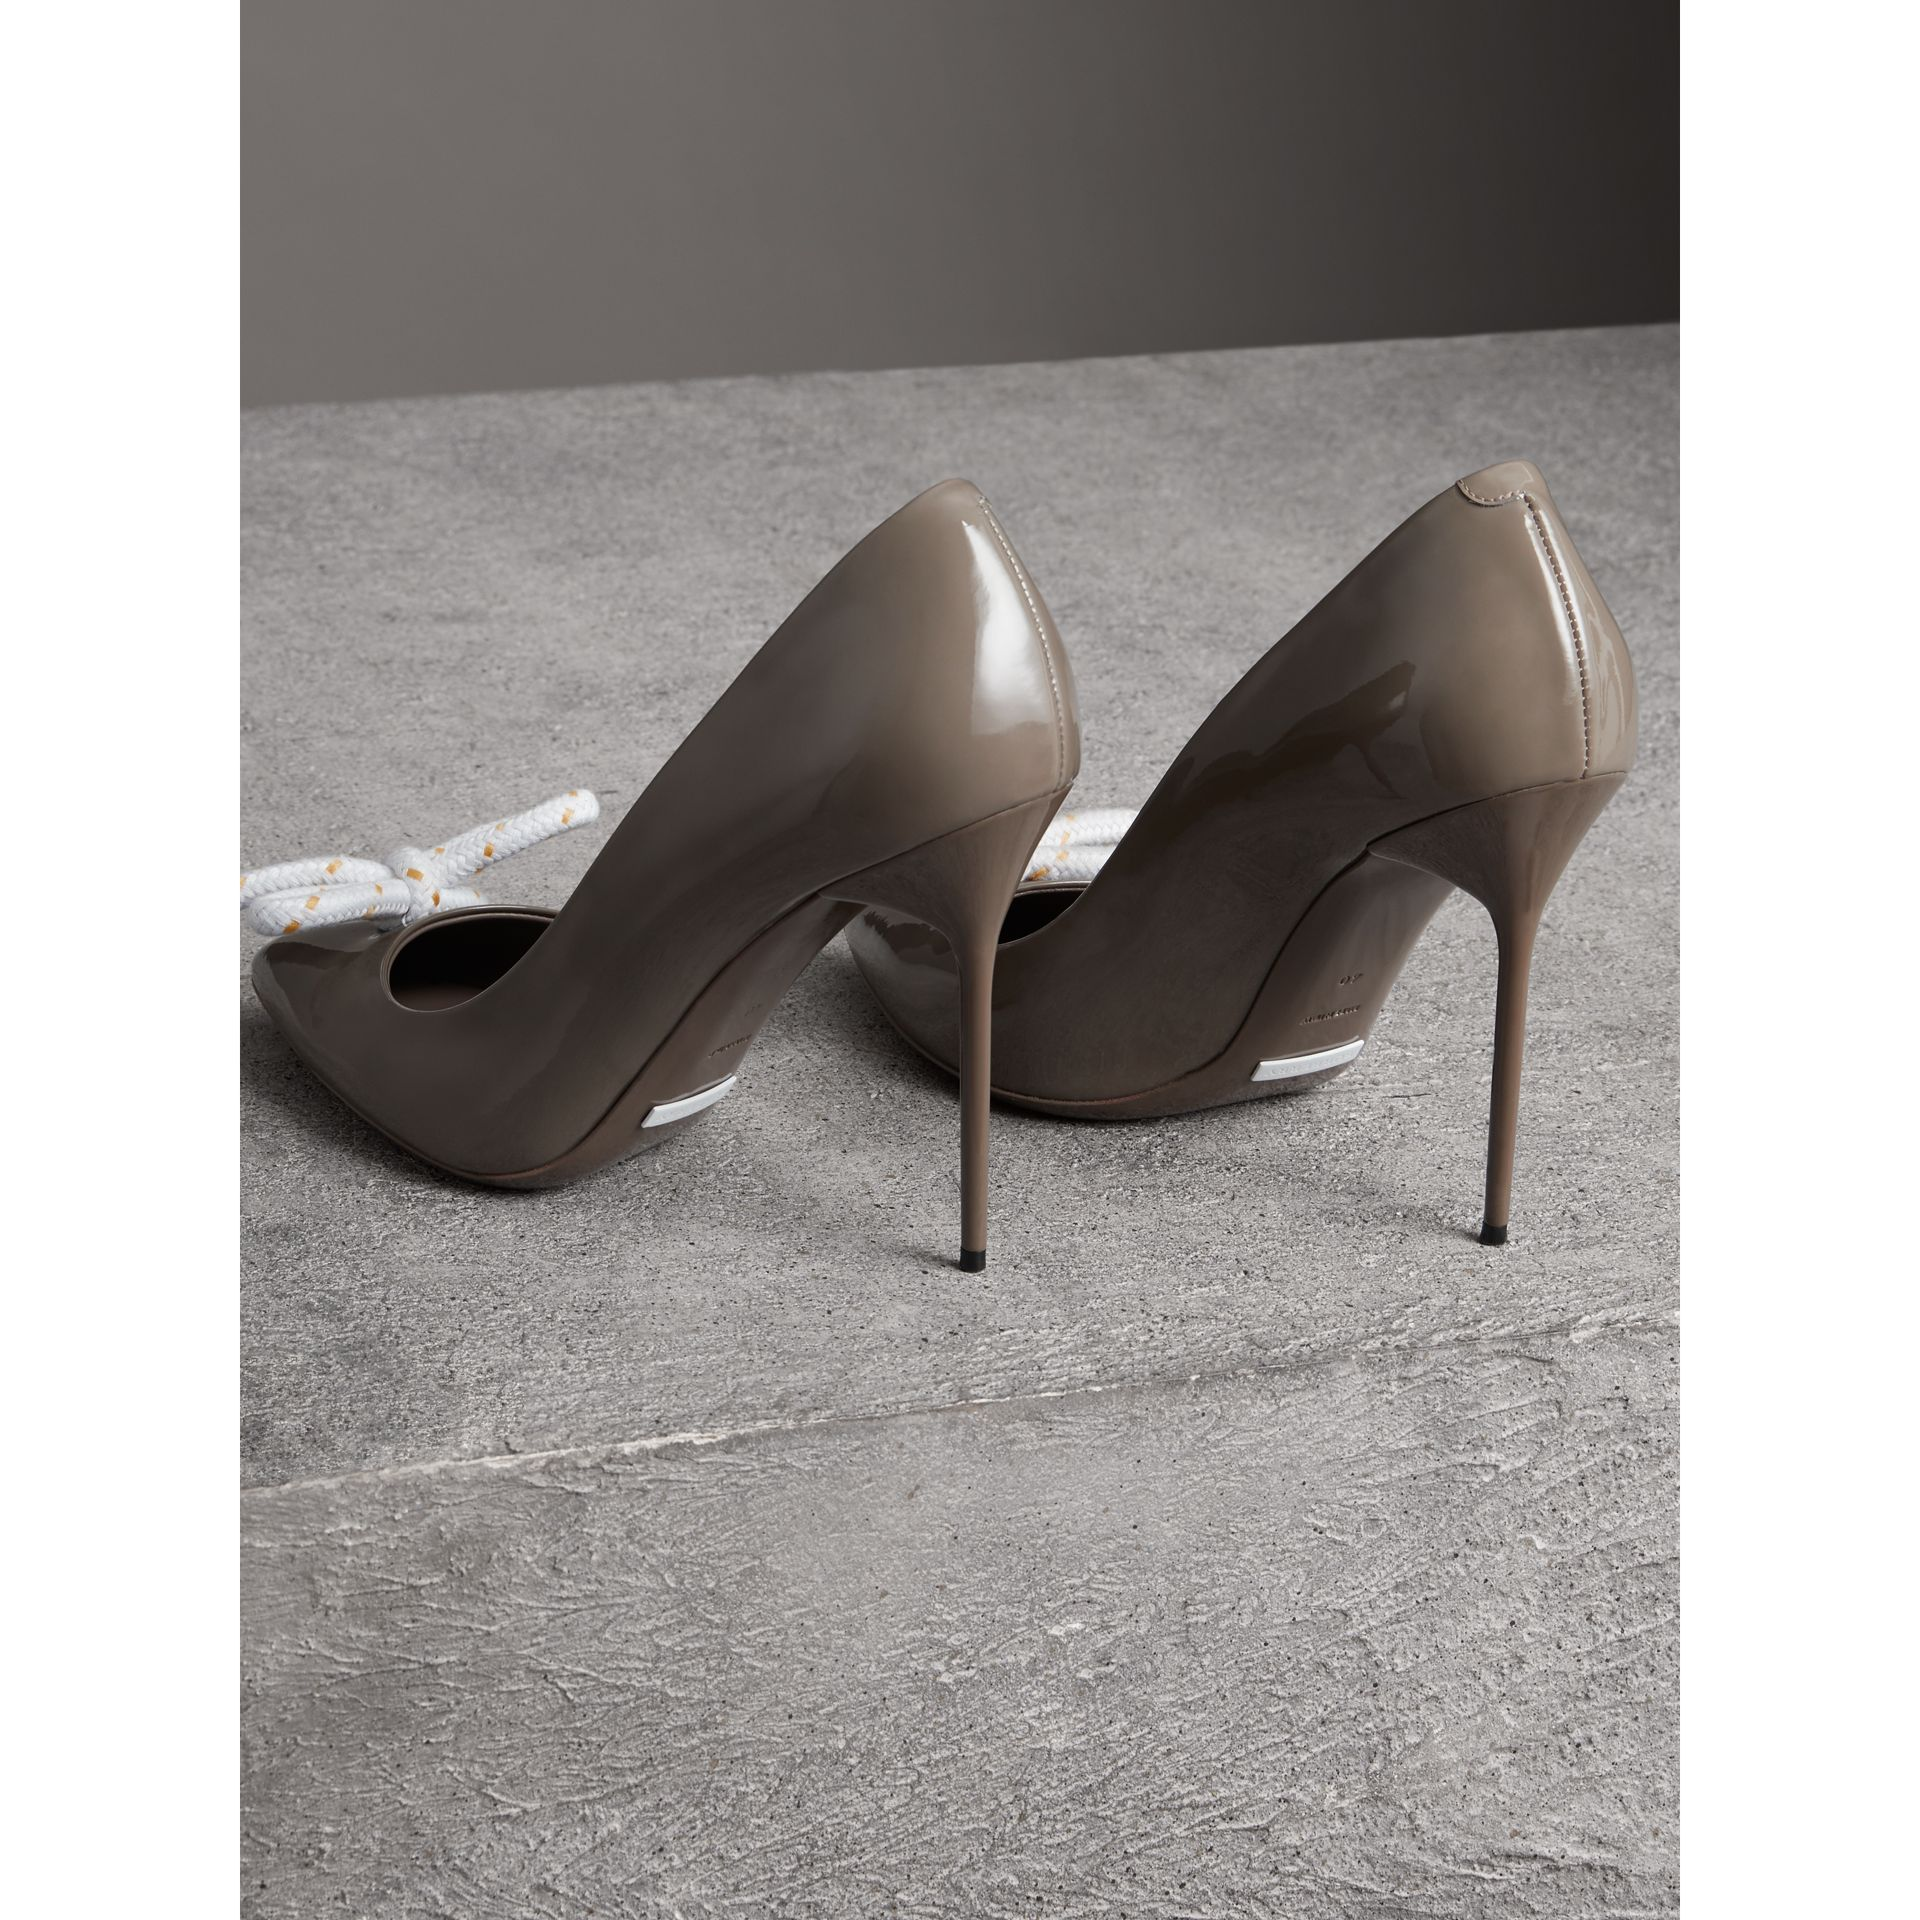 Stiletto-Pumps aus Lackleder mit Kordeldetail (Taupe-grau) - Damen | Burberry - Galerie-Bild 3